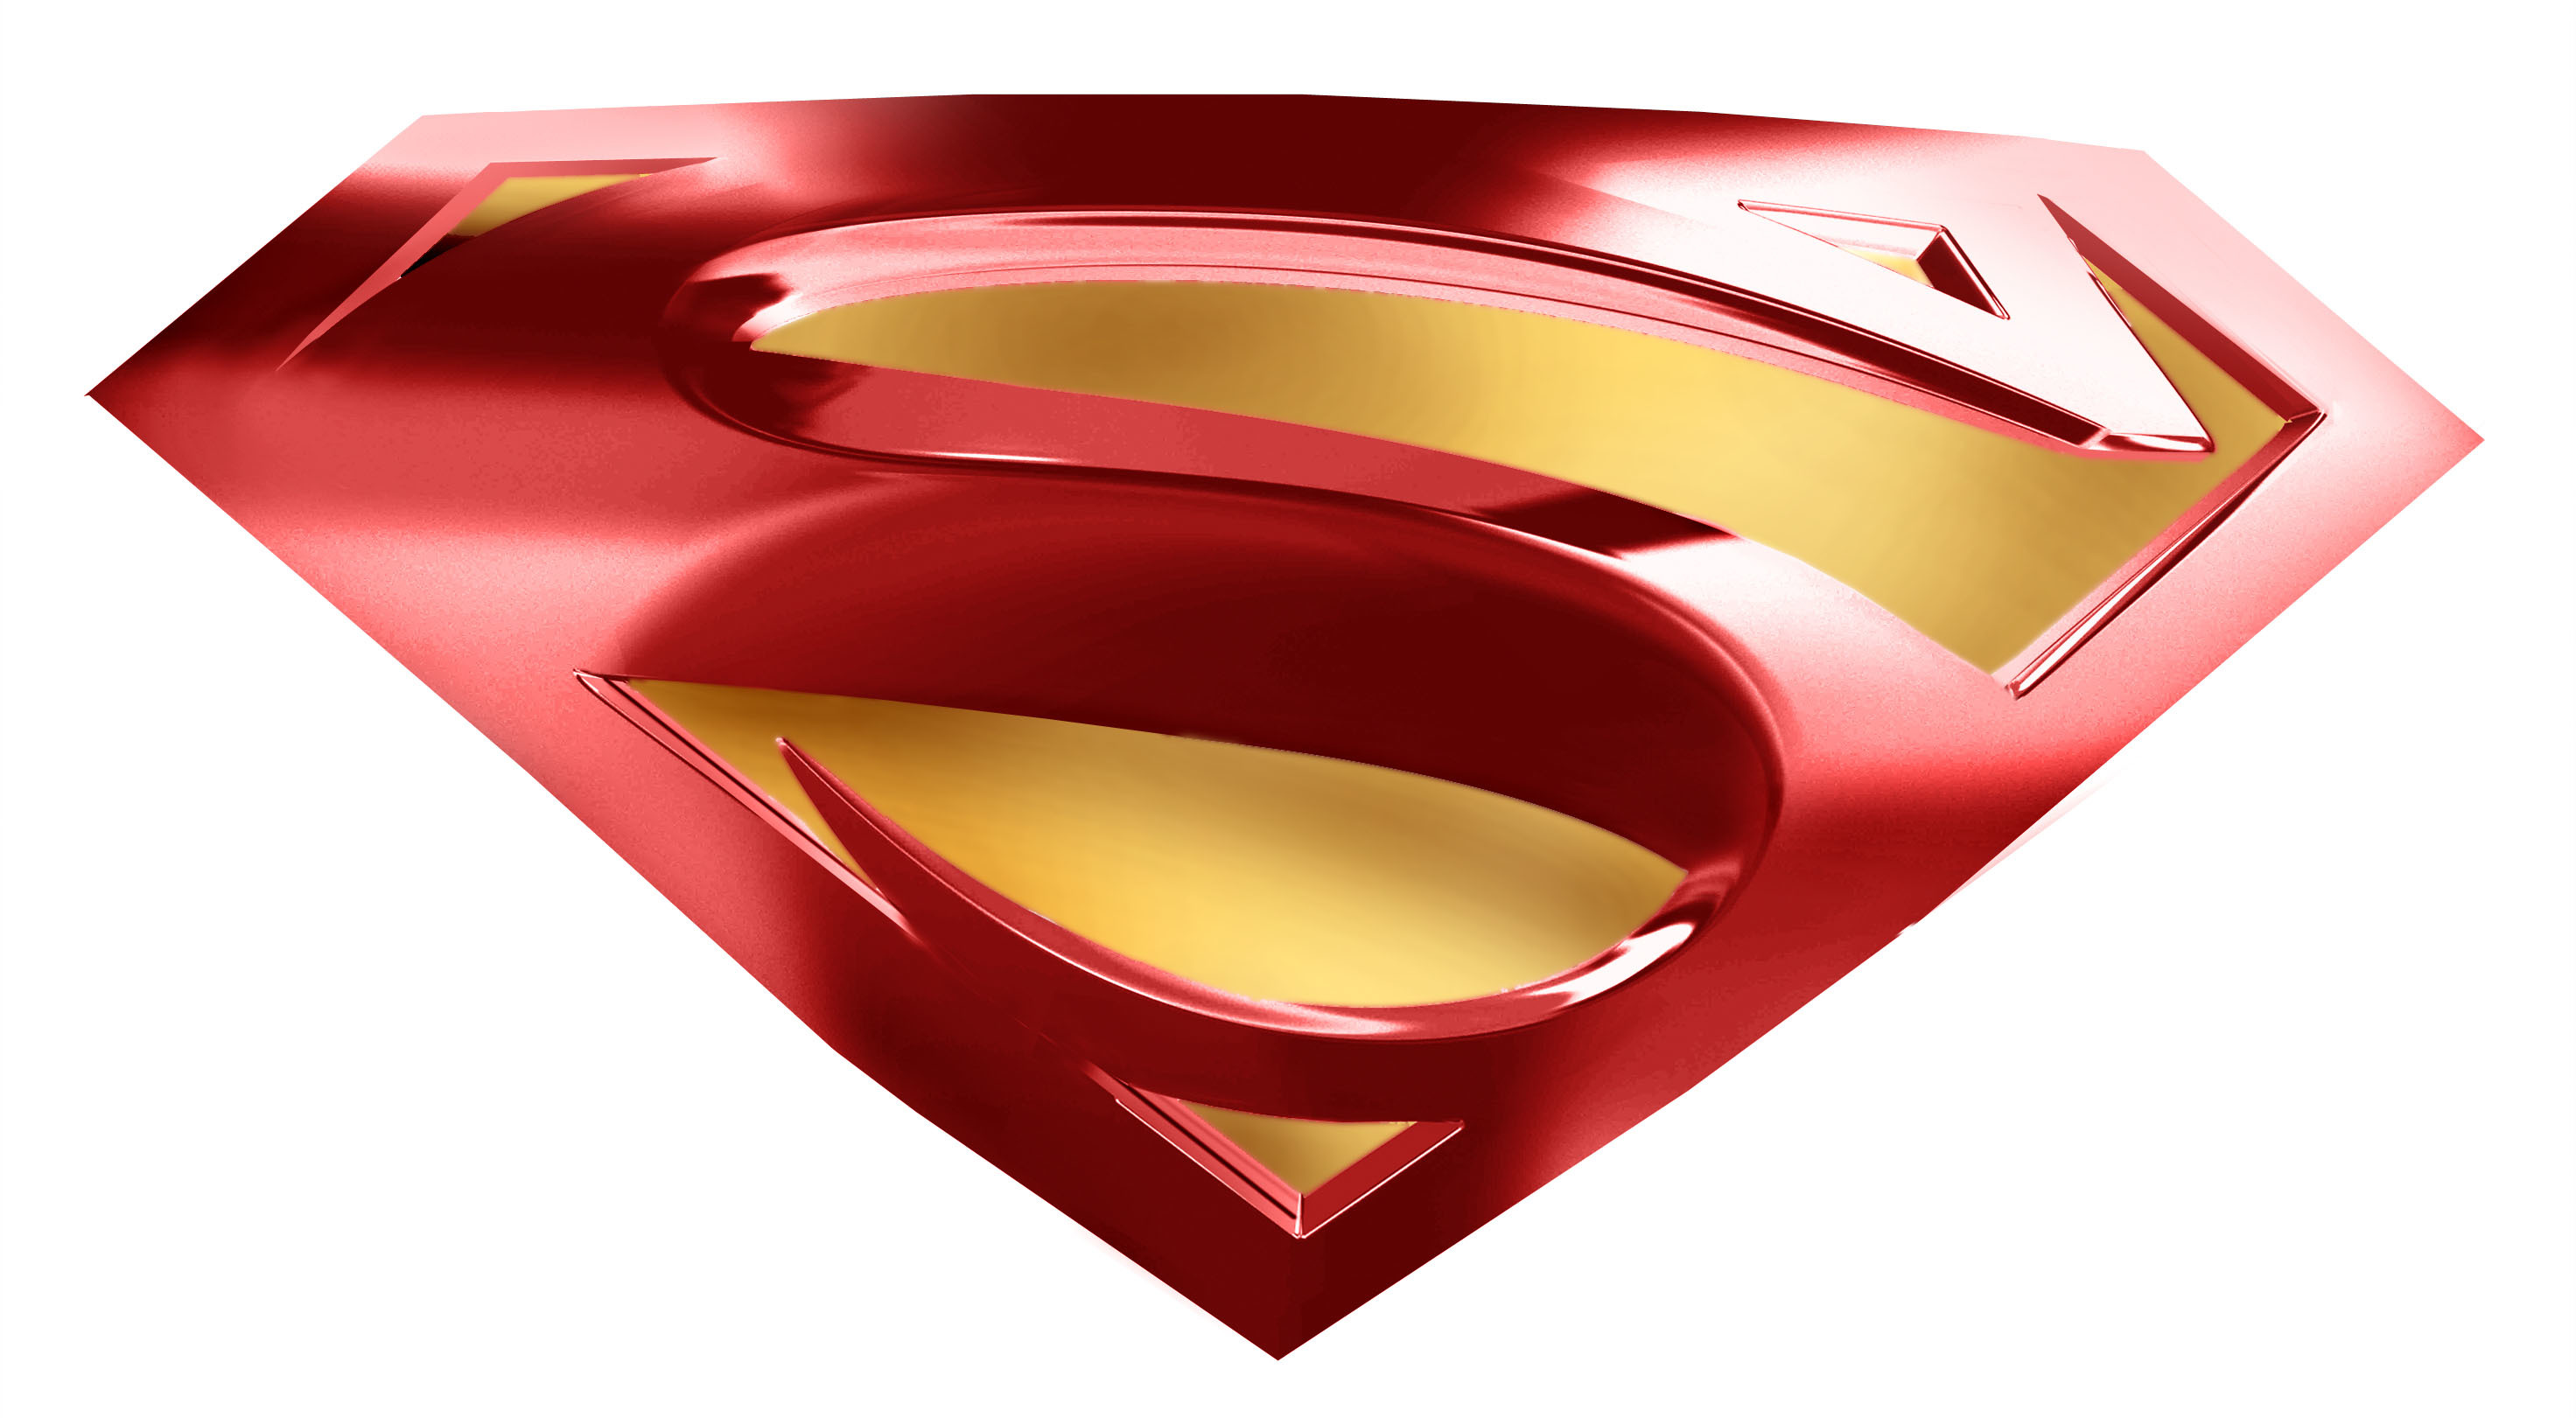 superman logo Company HD Wallpaper